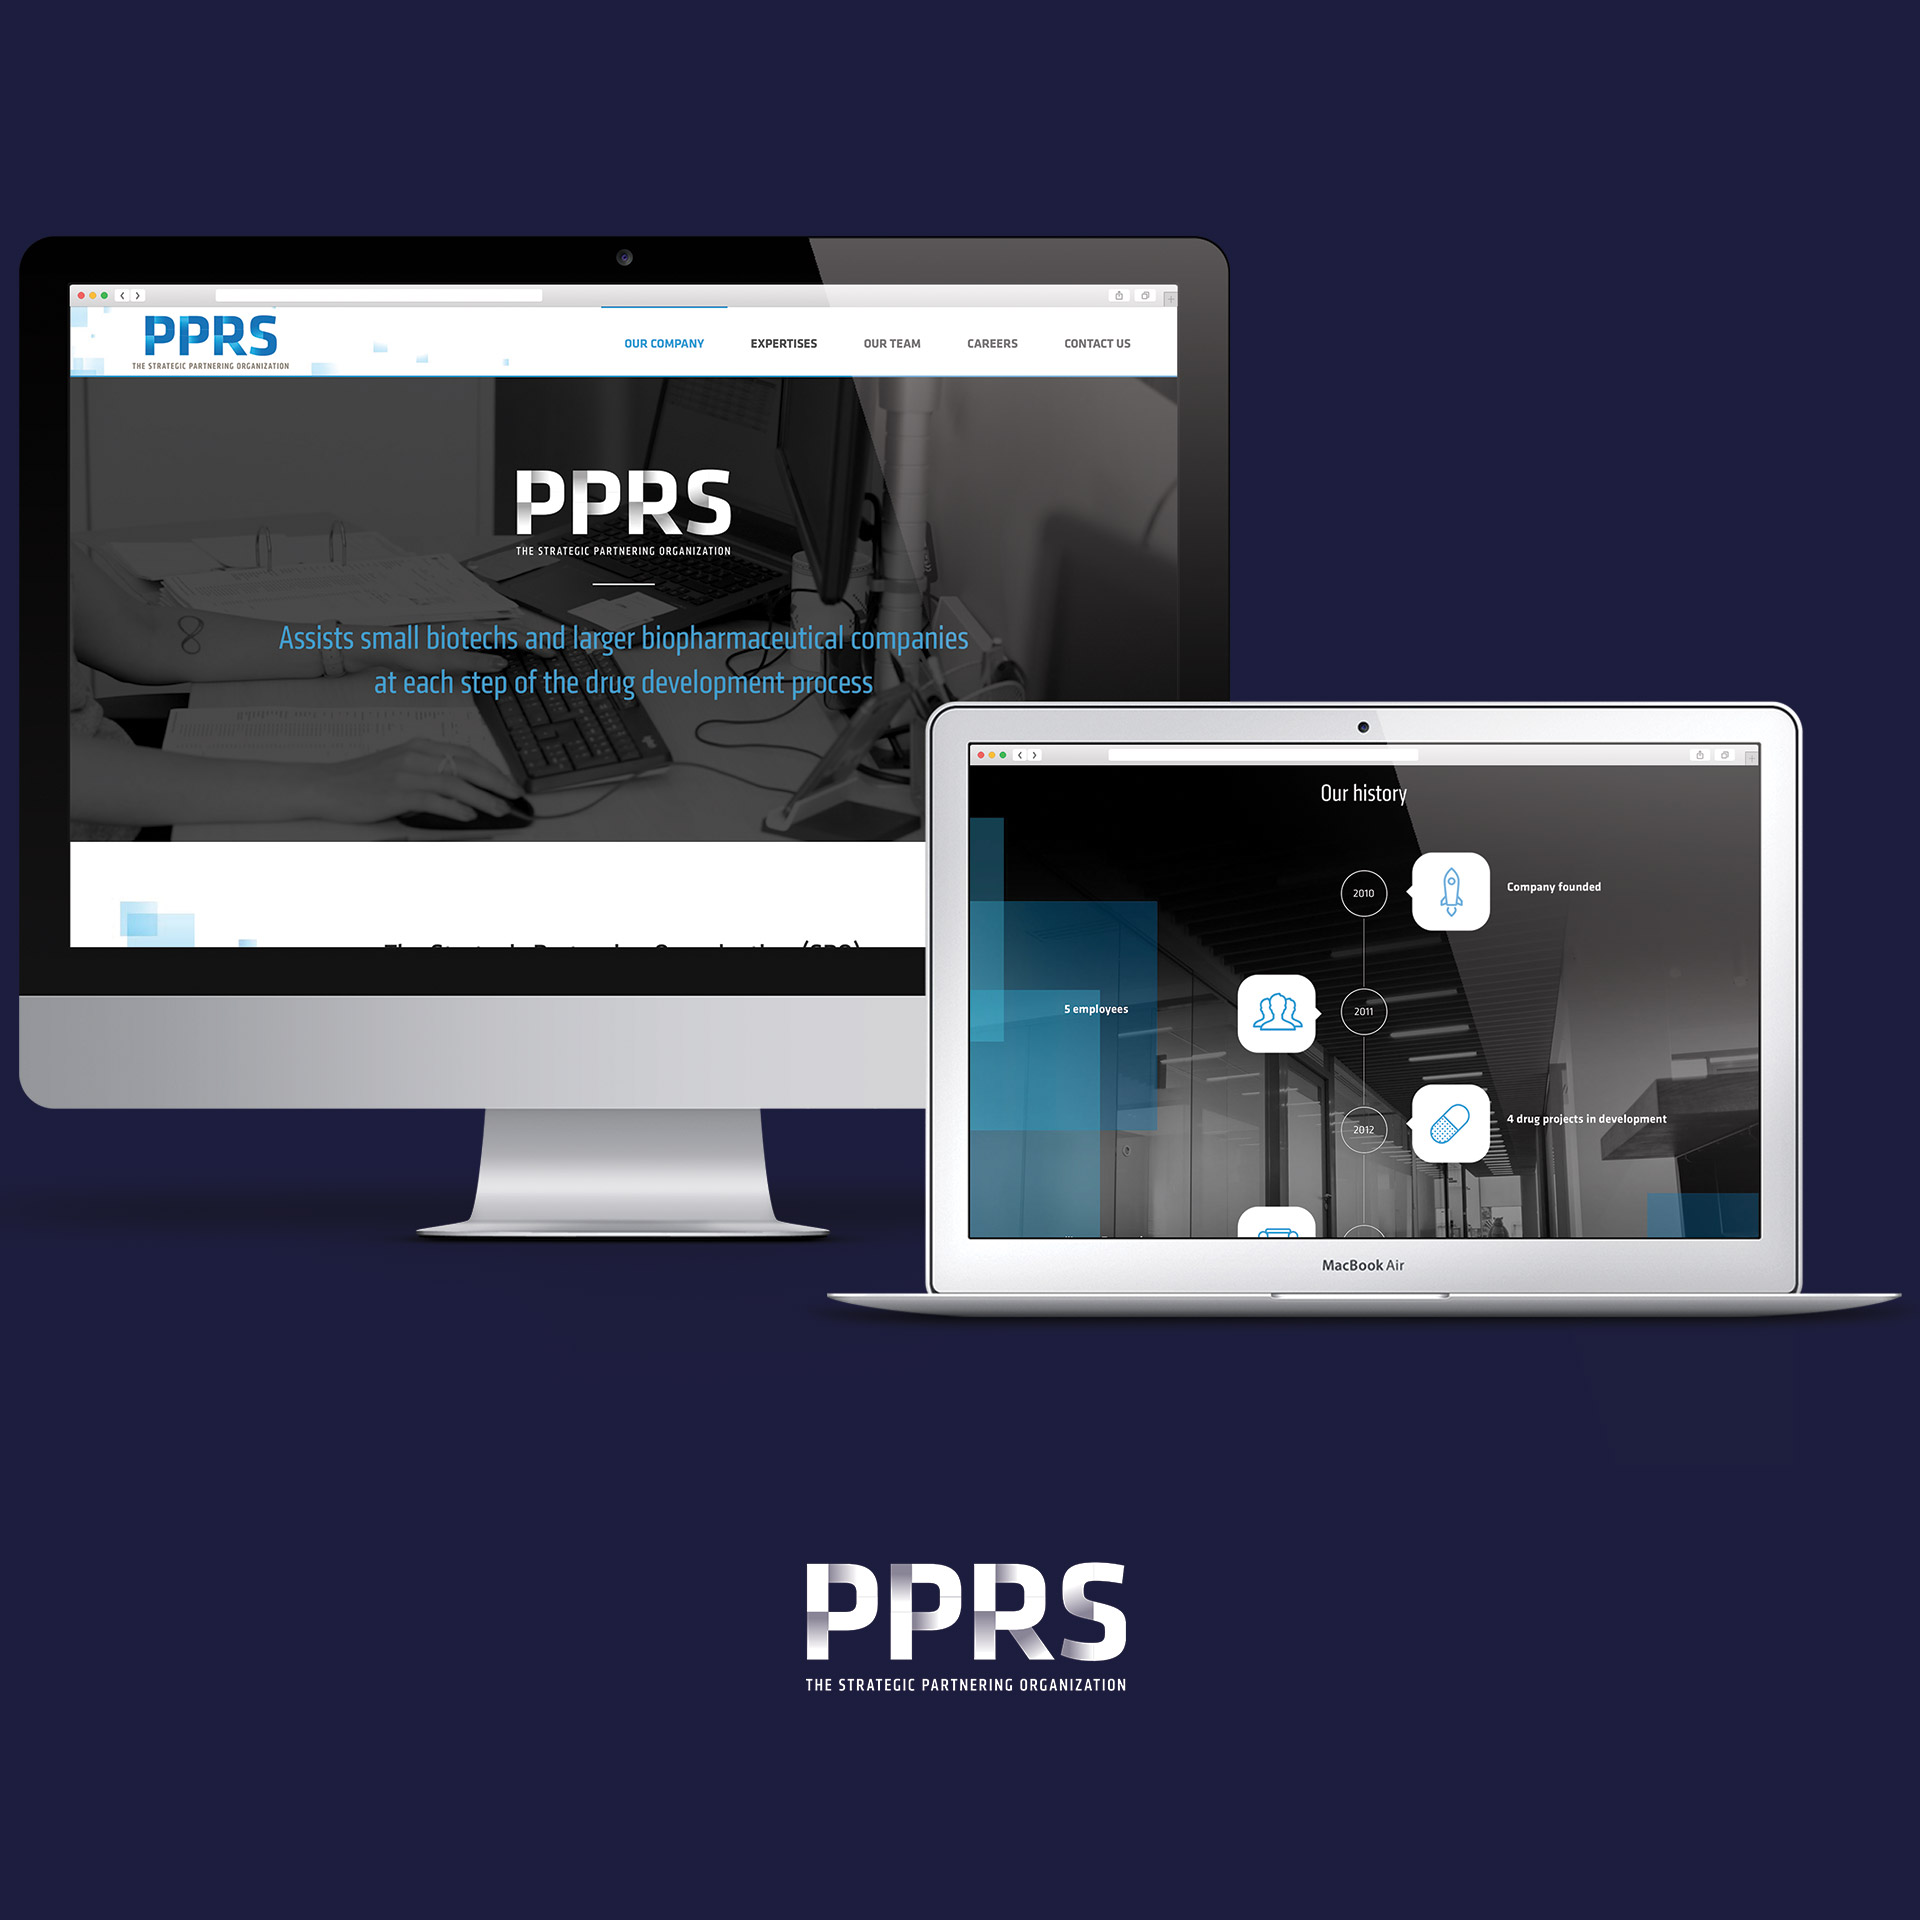 PPRS - The Strategic Partnering Organization